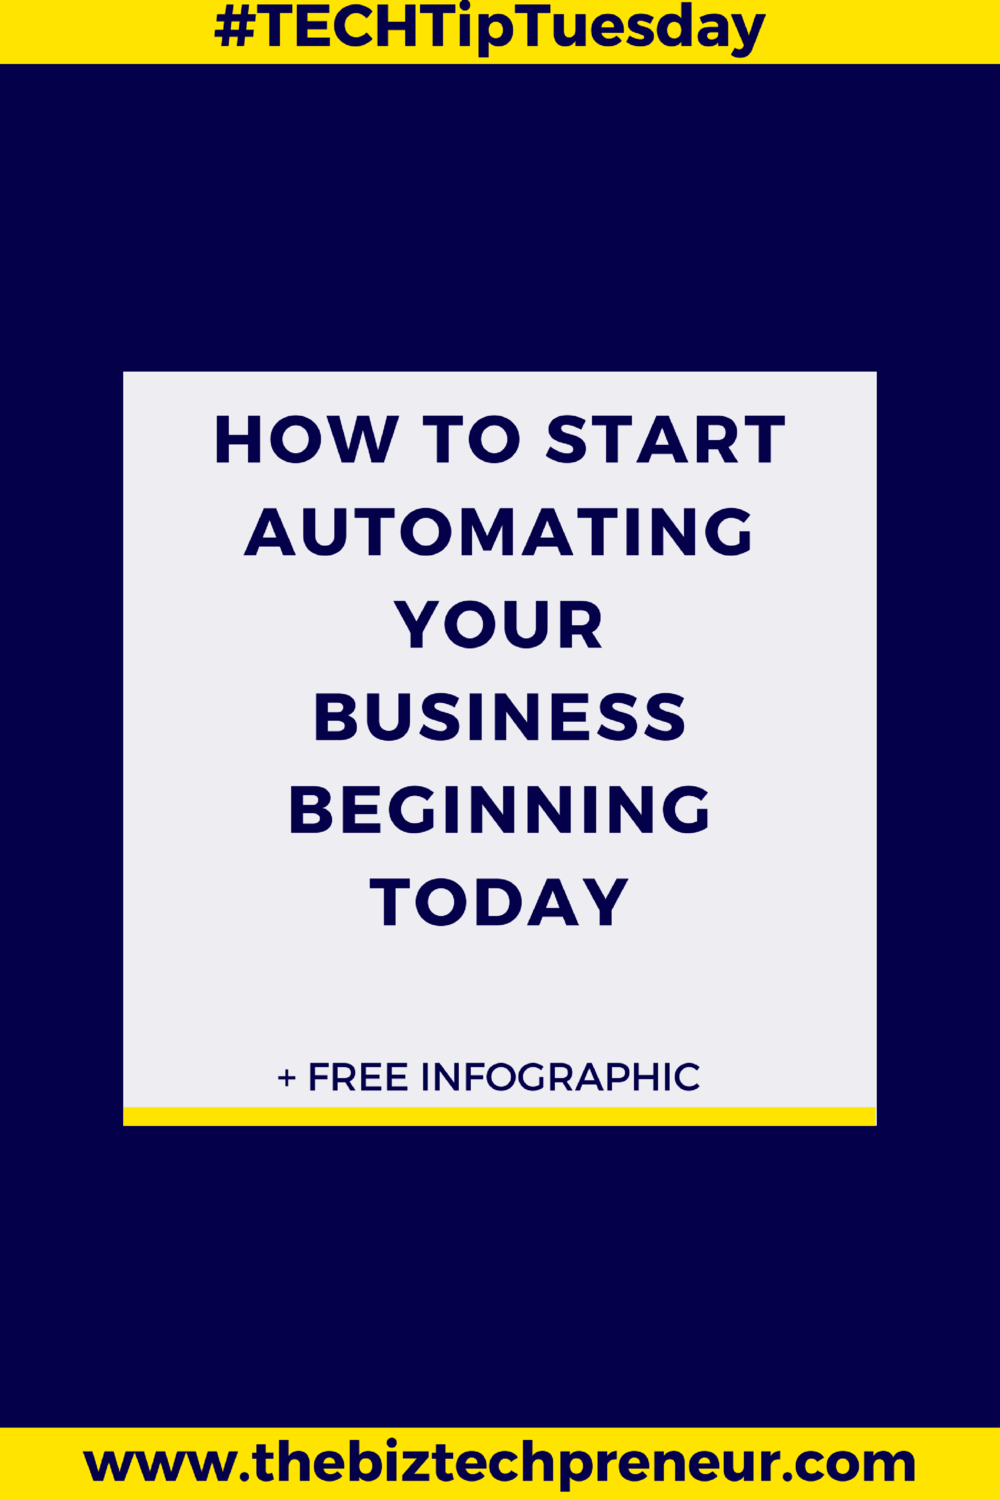 How to start automating your business beginning today + fee infographic